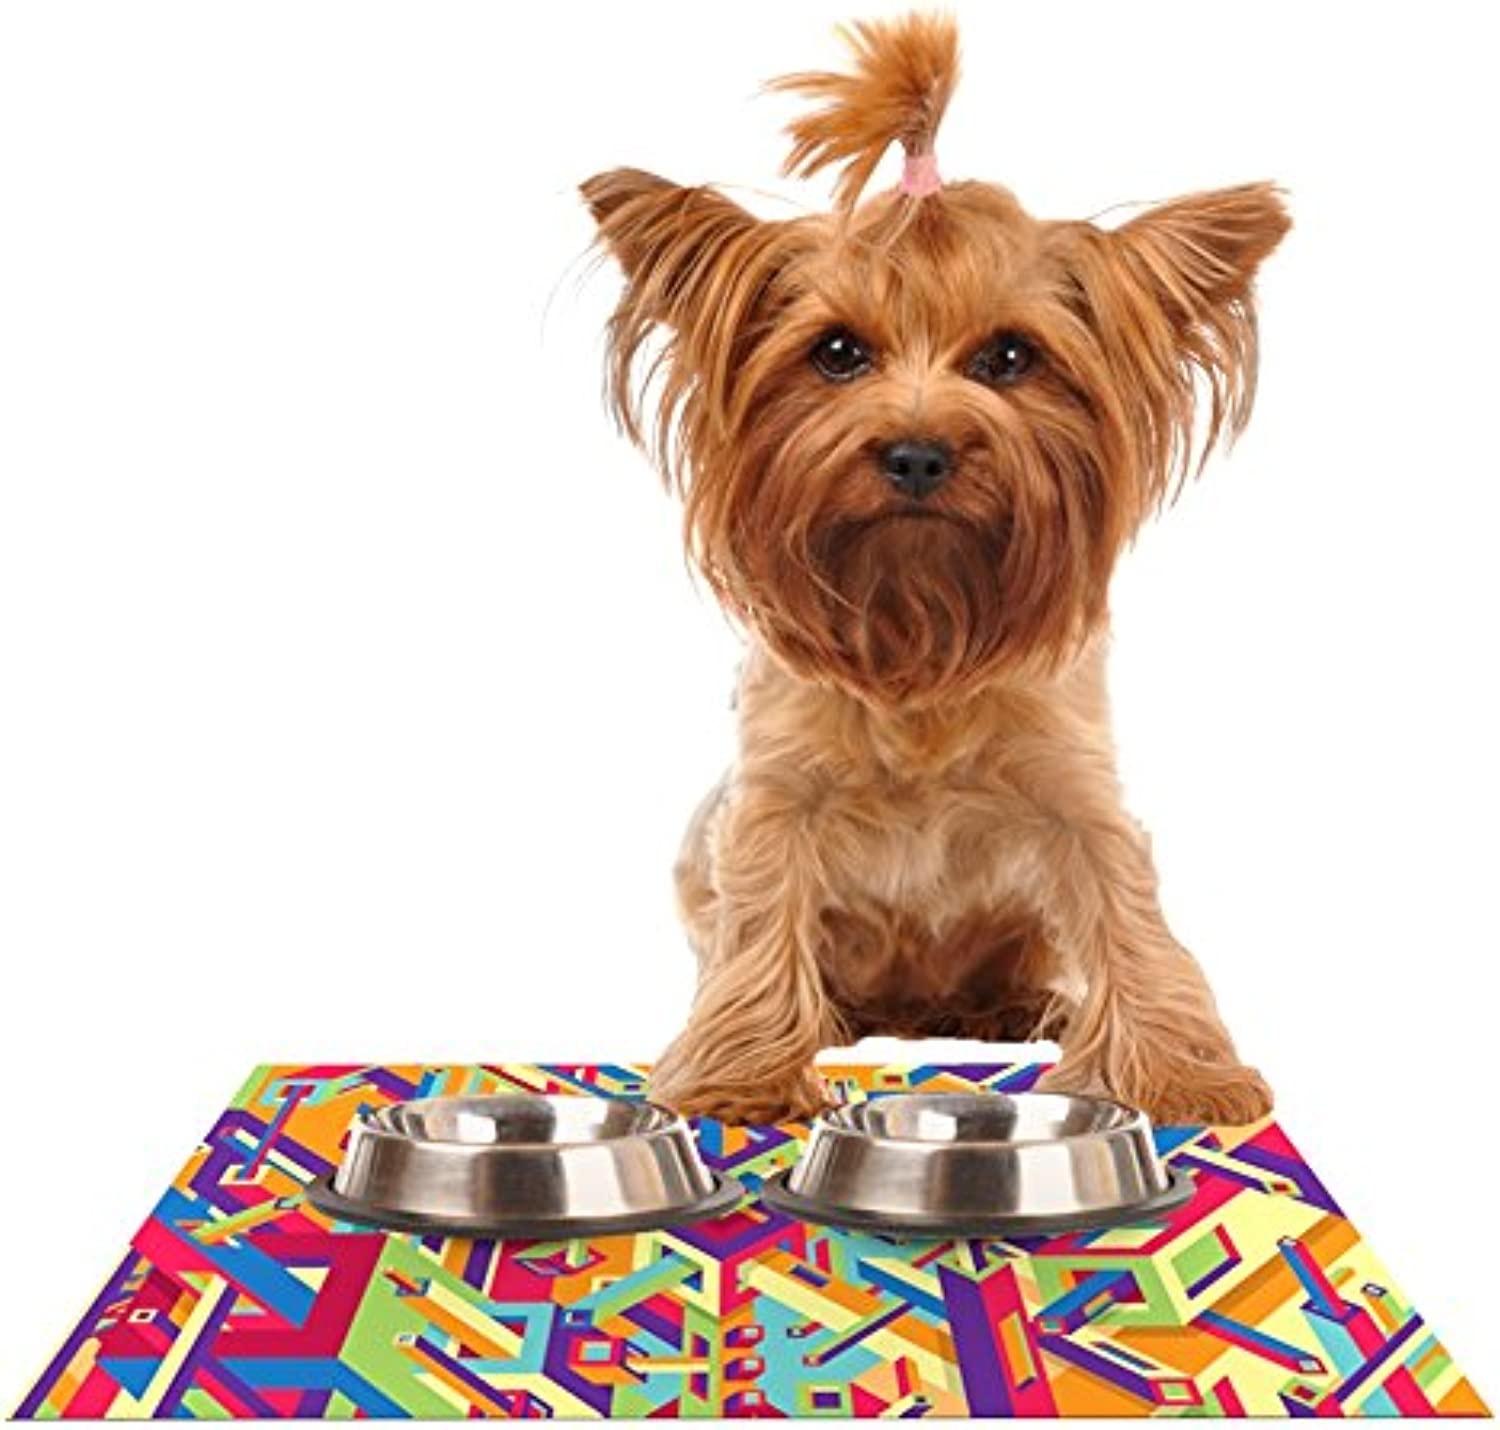 Kess InHouse Roberlan Buracos  Abstract Multicolor Feeding Mat for Pet Bowls, 24 by 15Inch